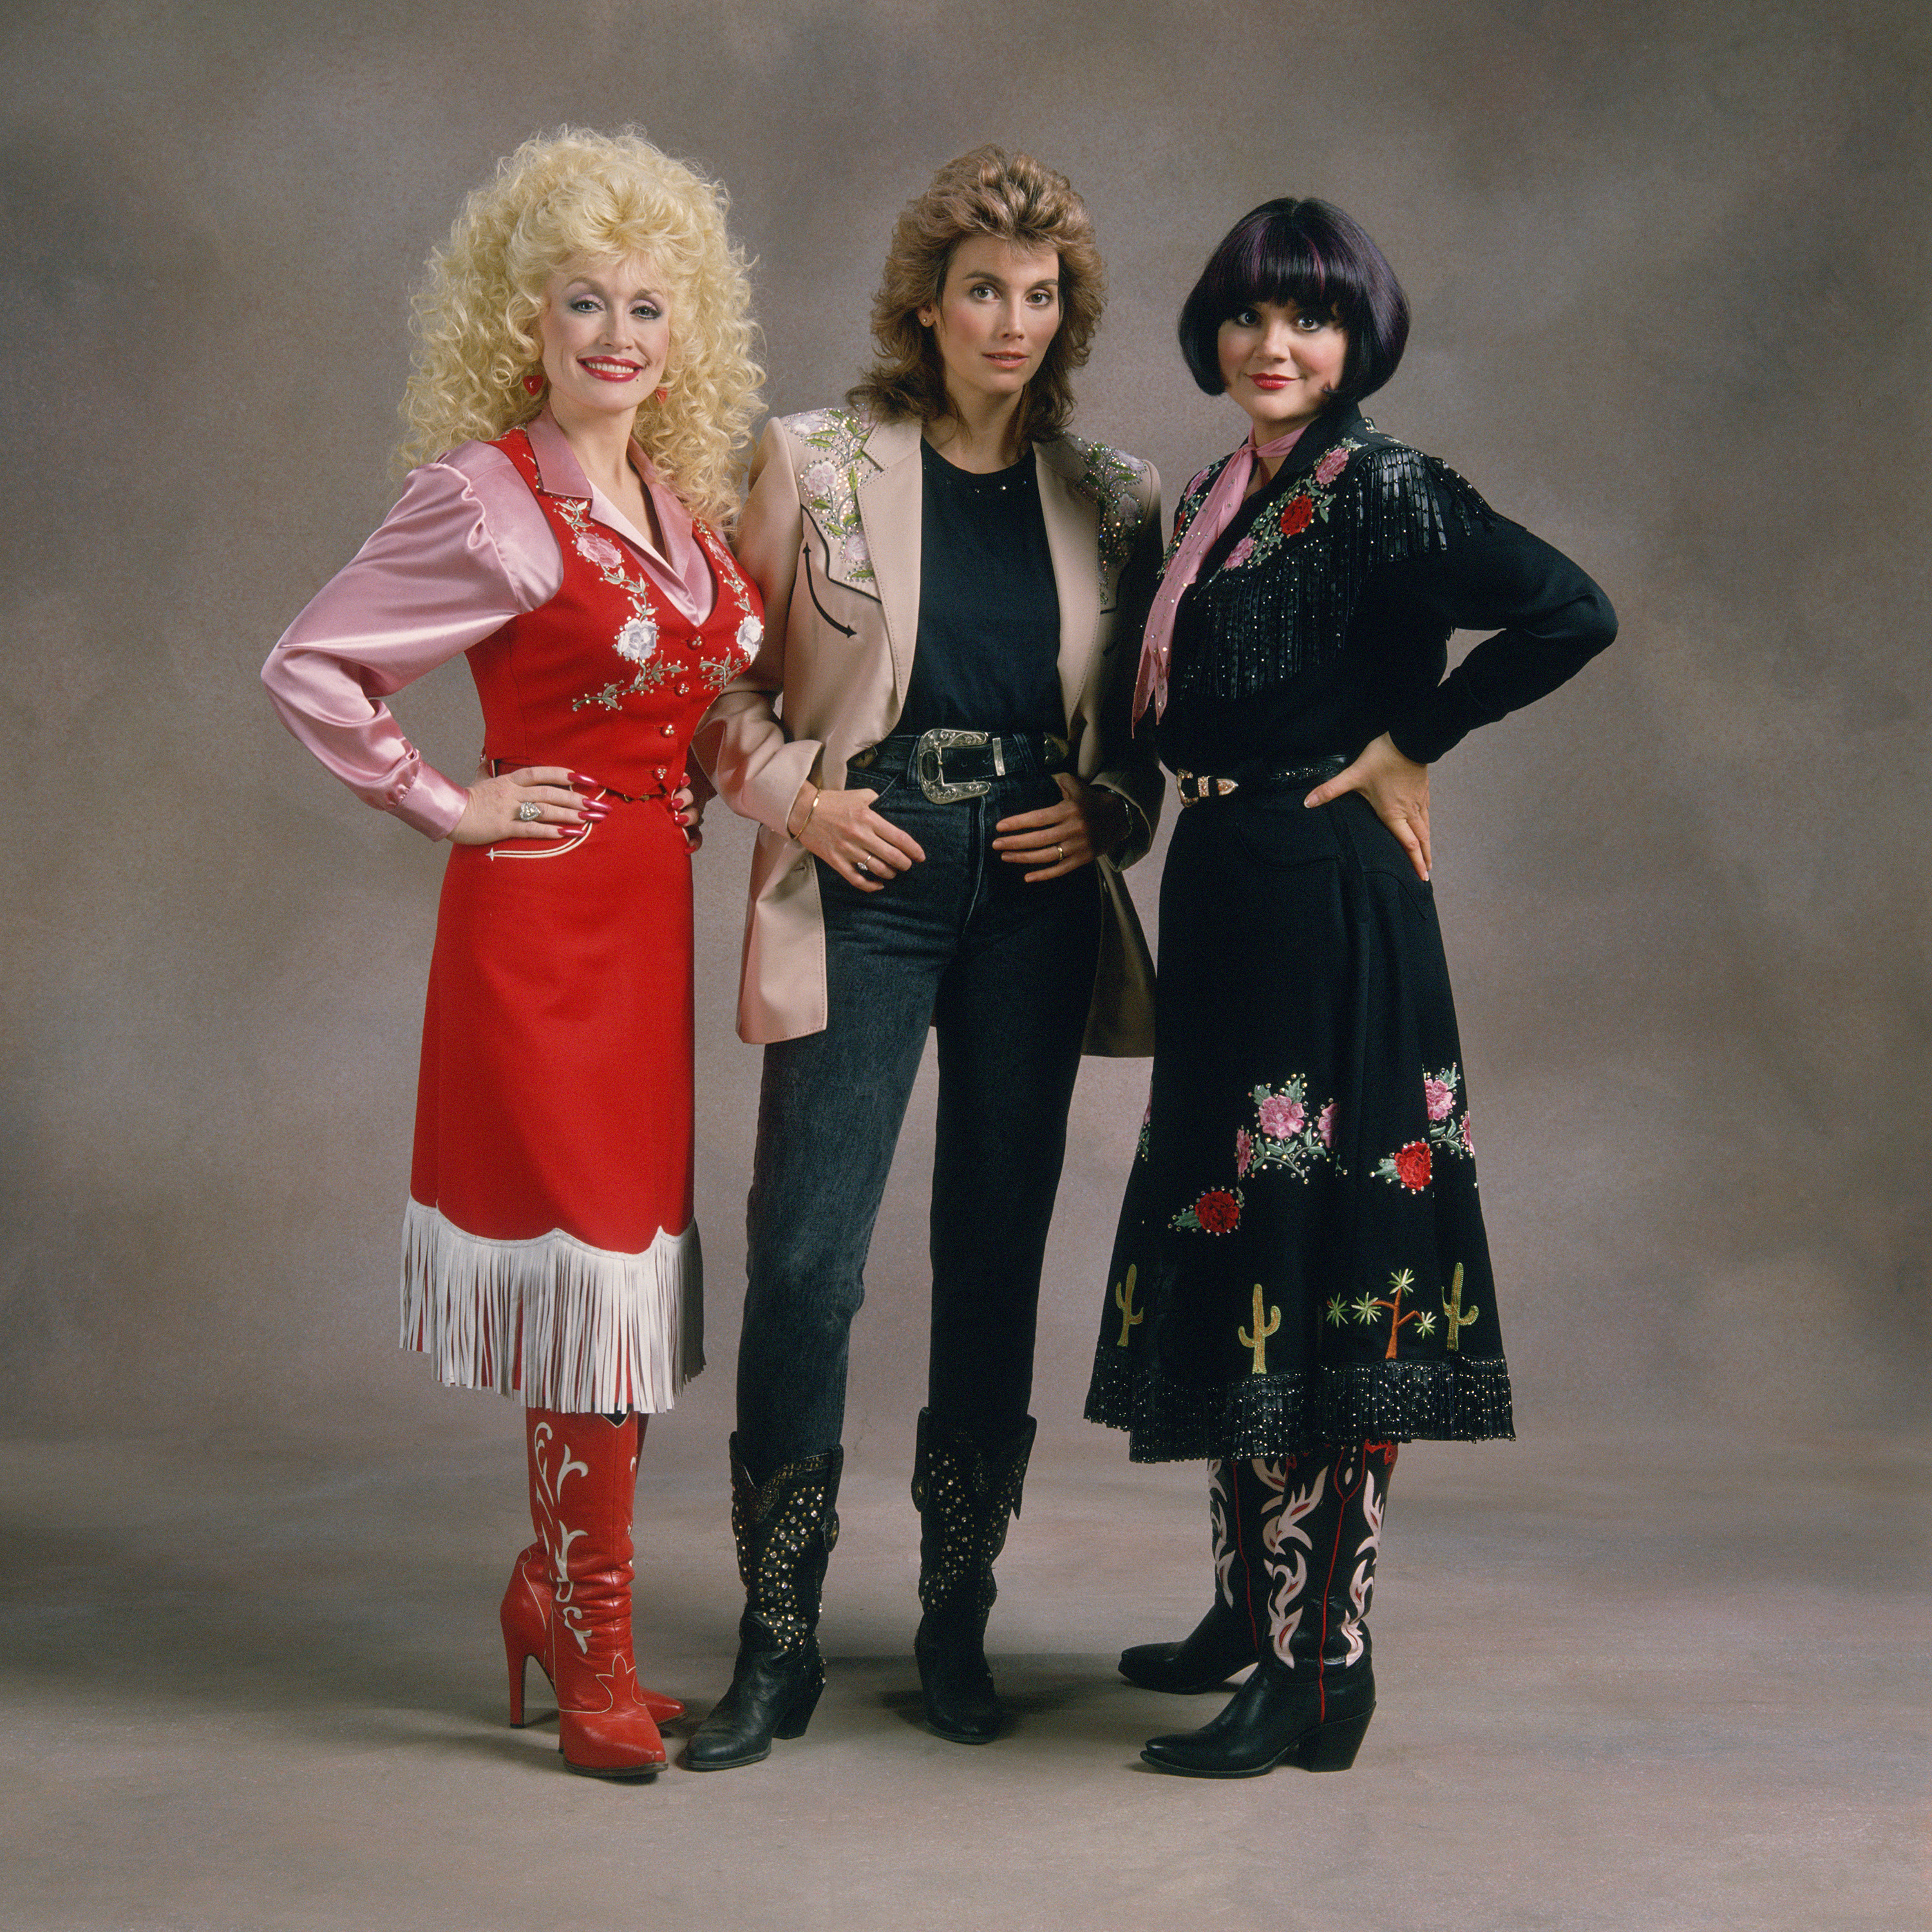 The Complete Trio Collection Deluxe Dolly Parton Linda Ronstadt Emmylou Harris: TRIO: THE COMPLETE COLLECTION AVAILABLE NOW!